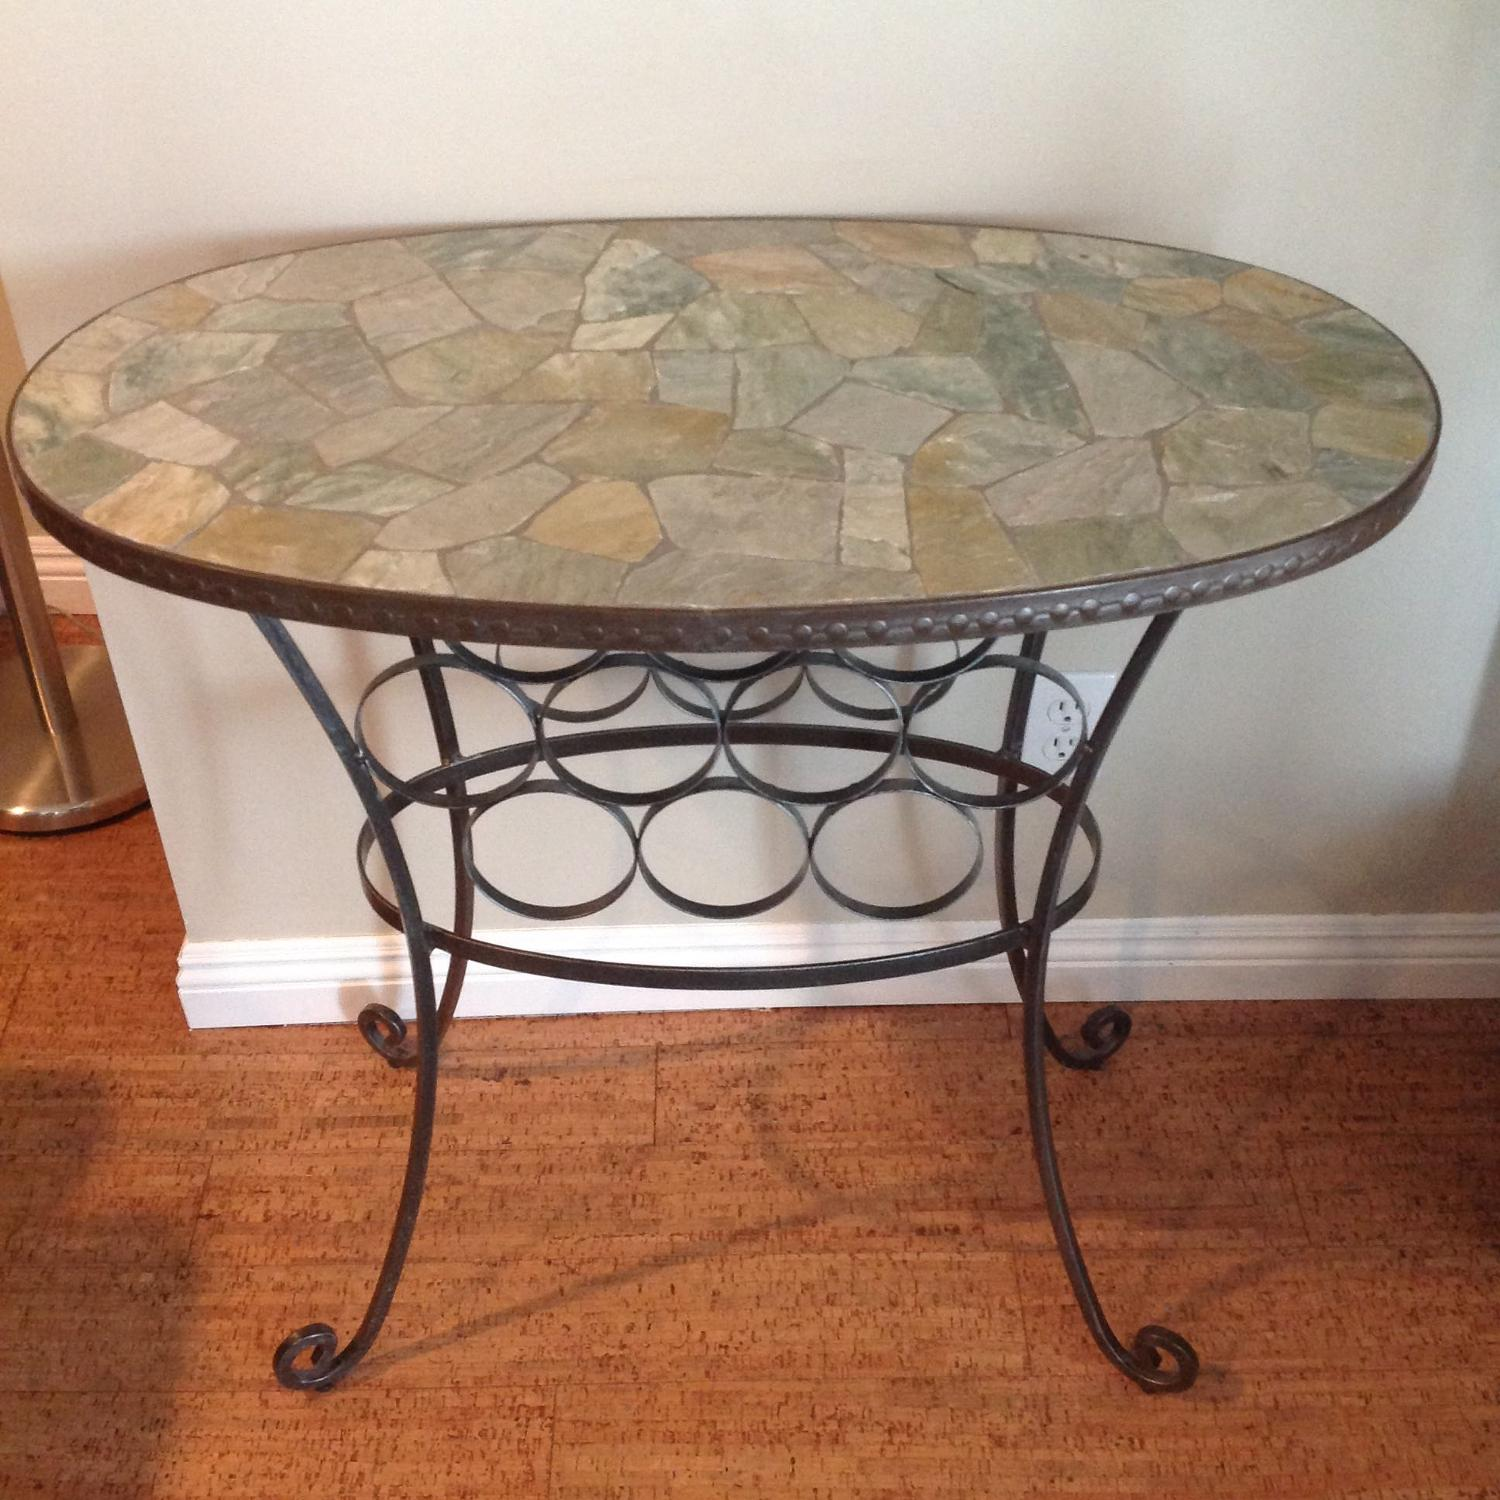 Best stone table wine rack for sale in cochrane alberta for Y h furniture trading